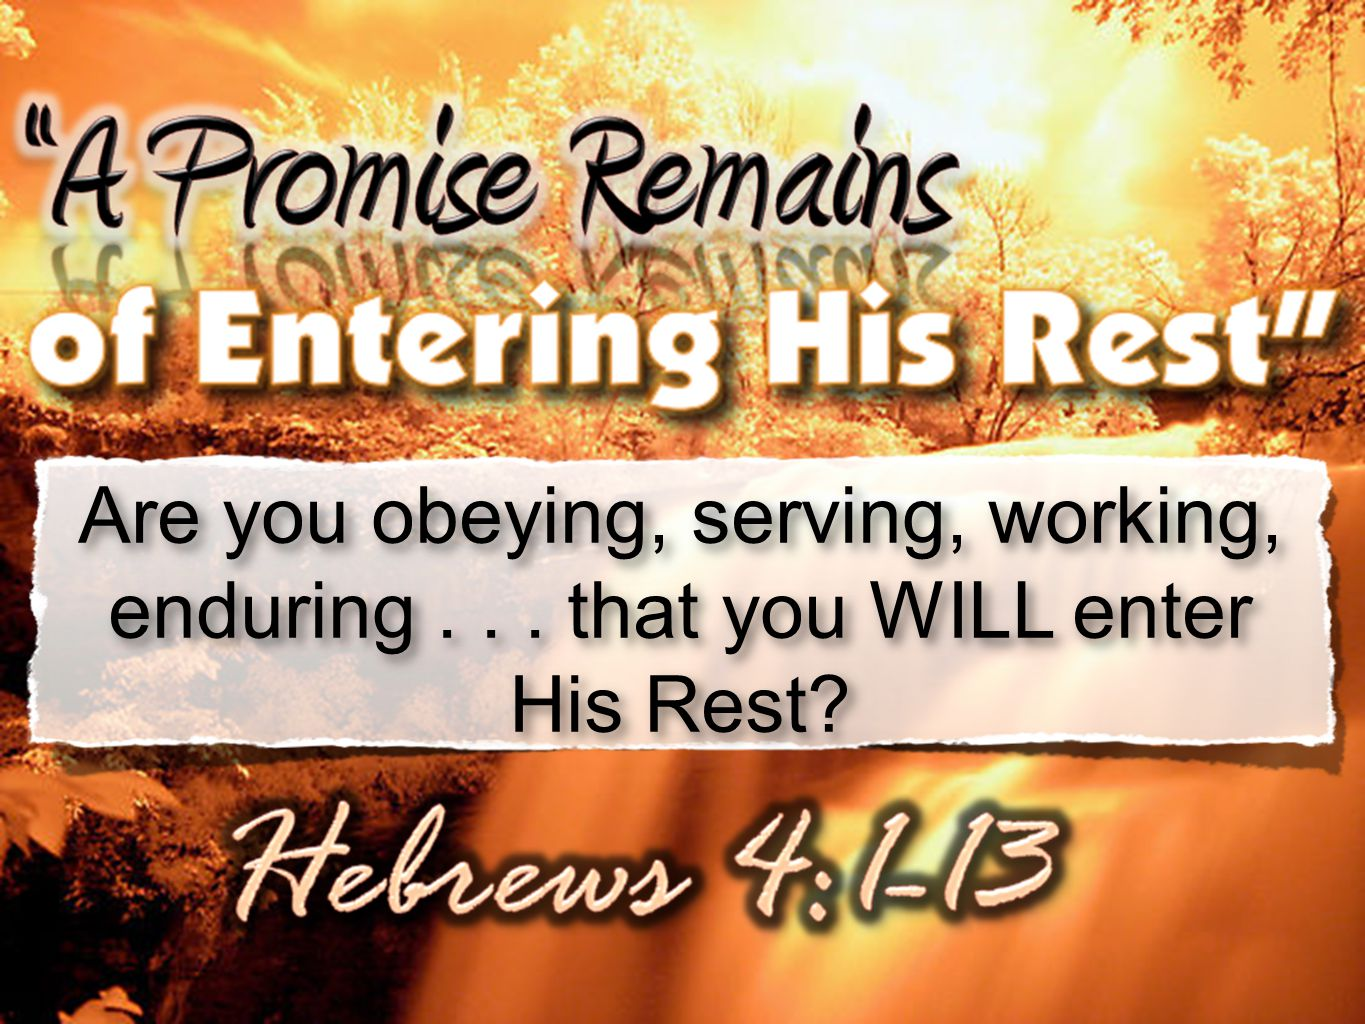 36 Are you obeying, serving, working, enduring... that you WILL enter His Rest?